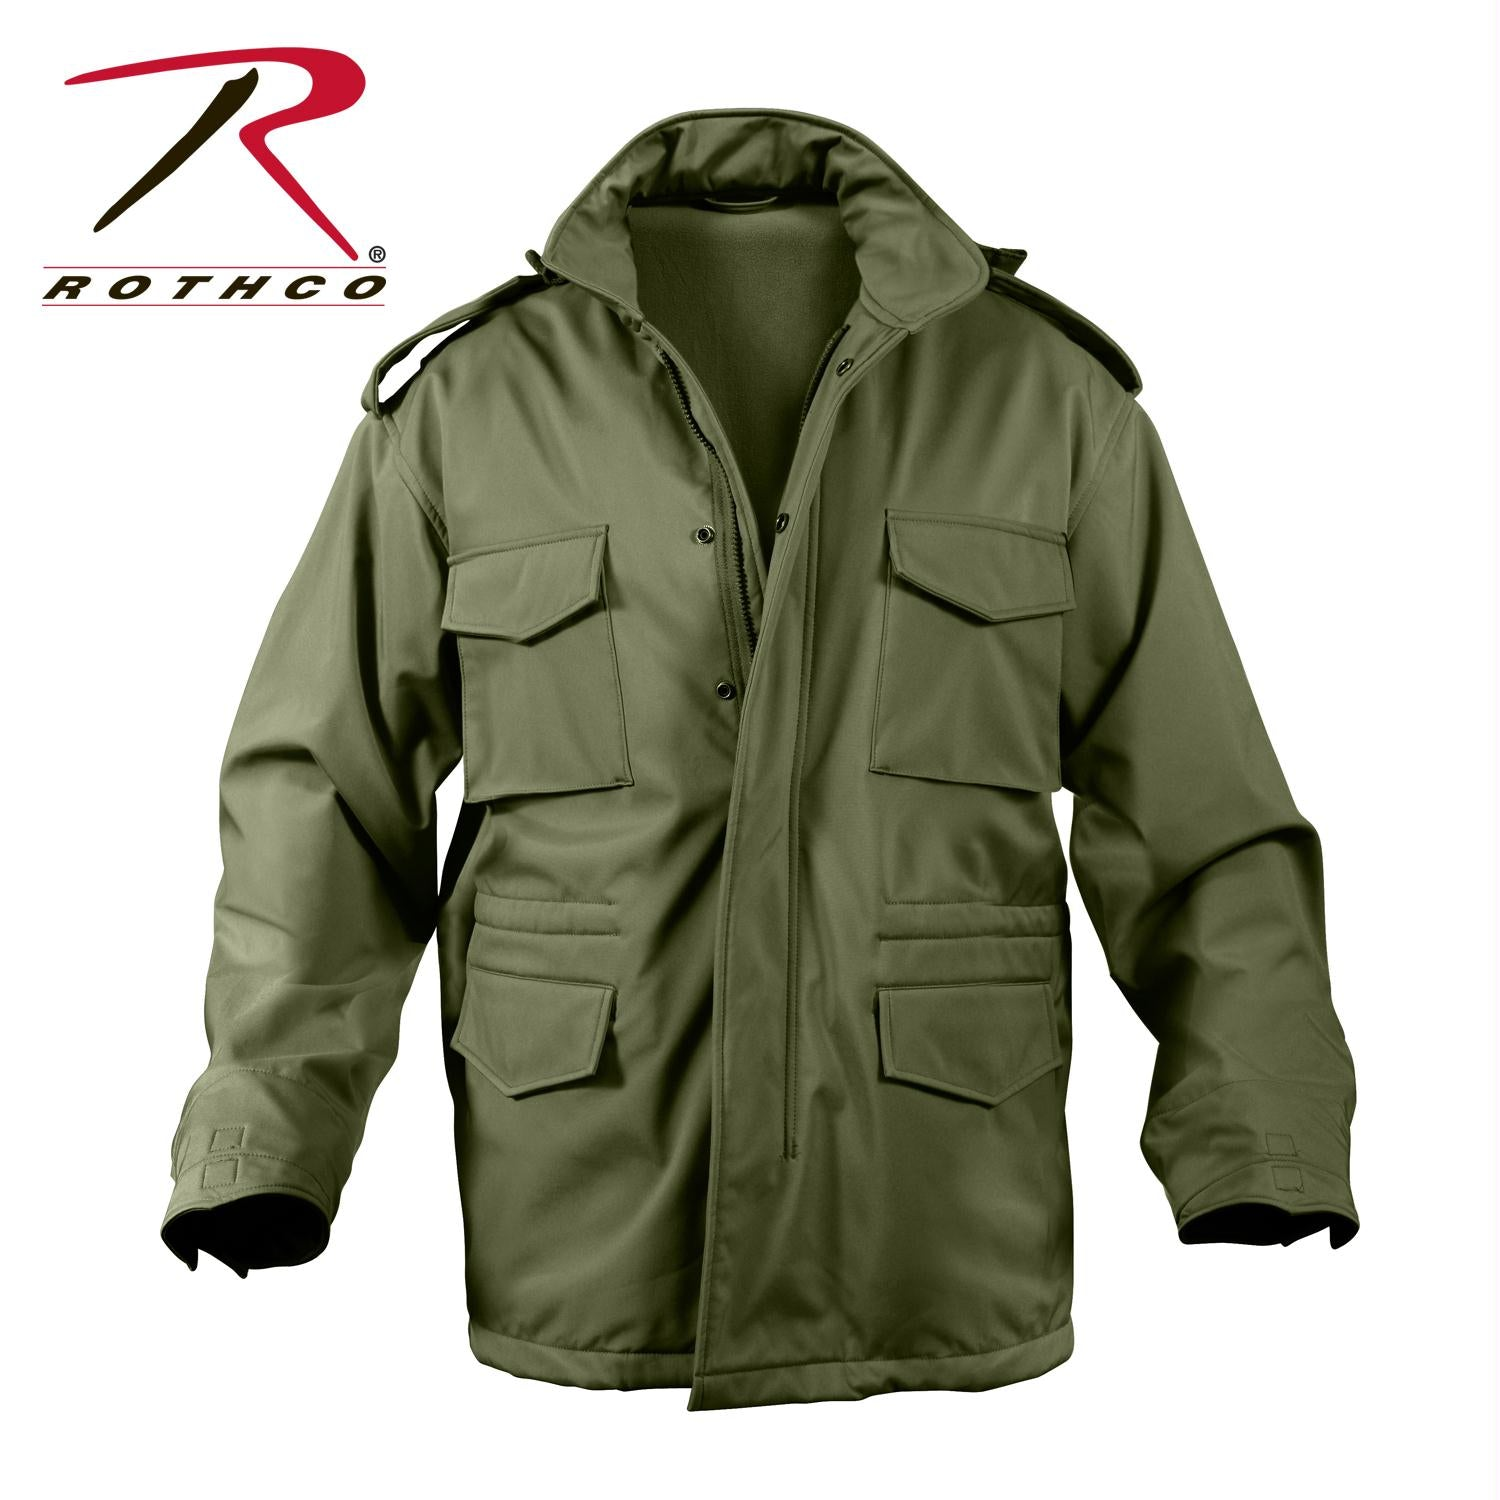 Rothco Soft Shell Tactical M-65 Field Jacket - Olive Drab / 2XL